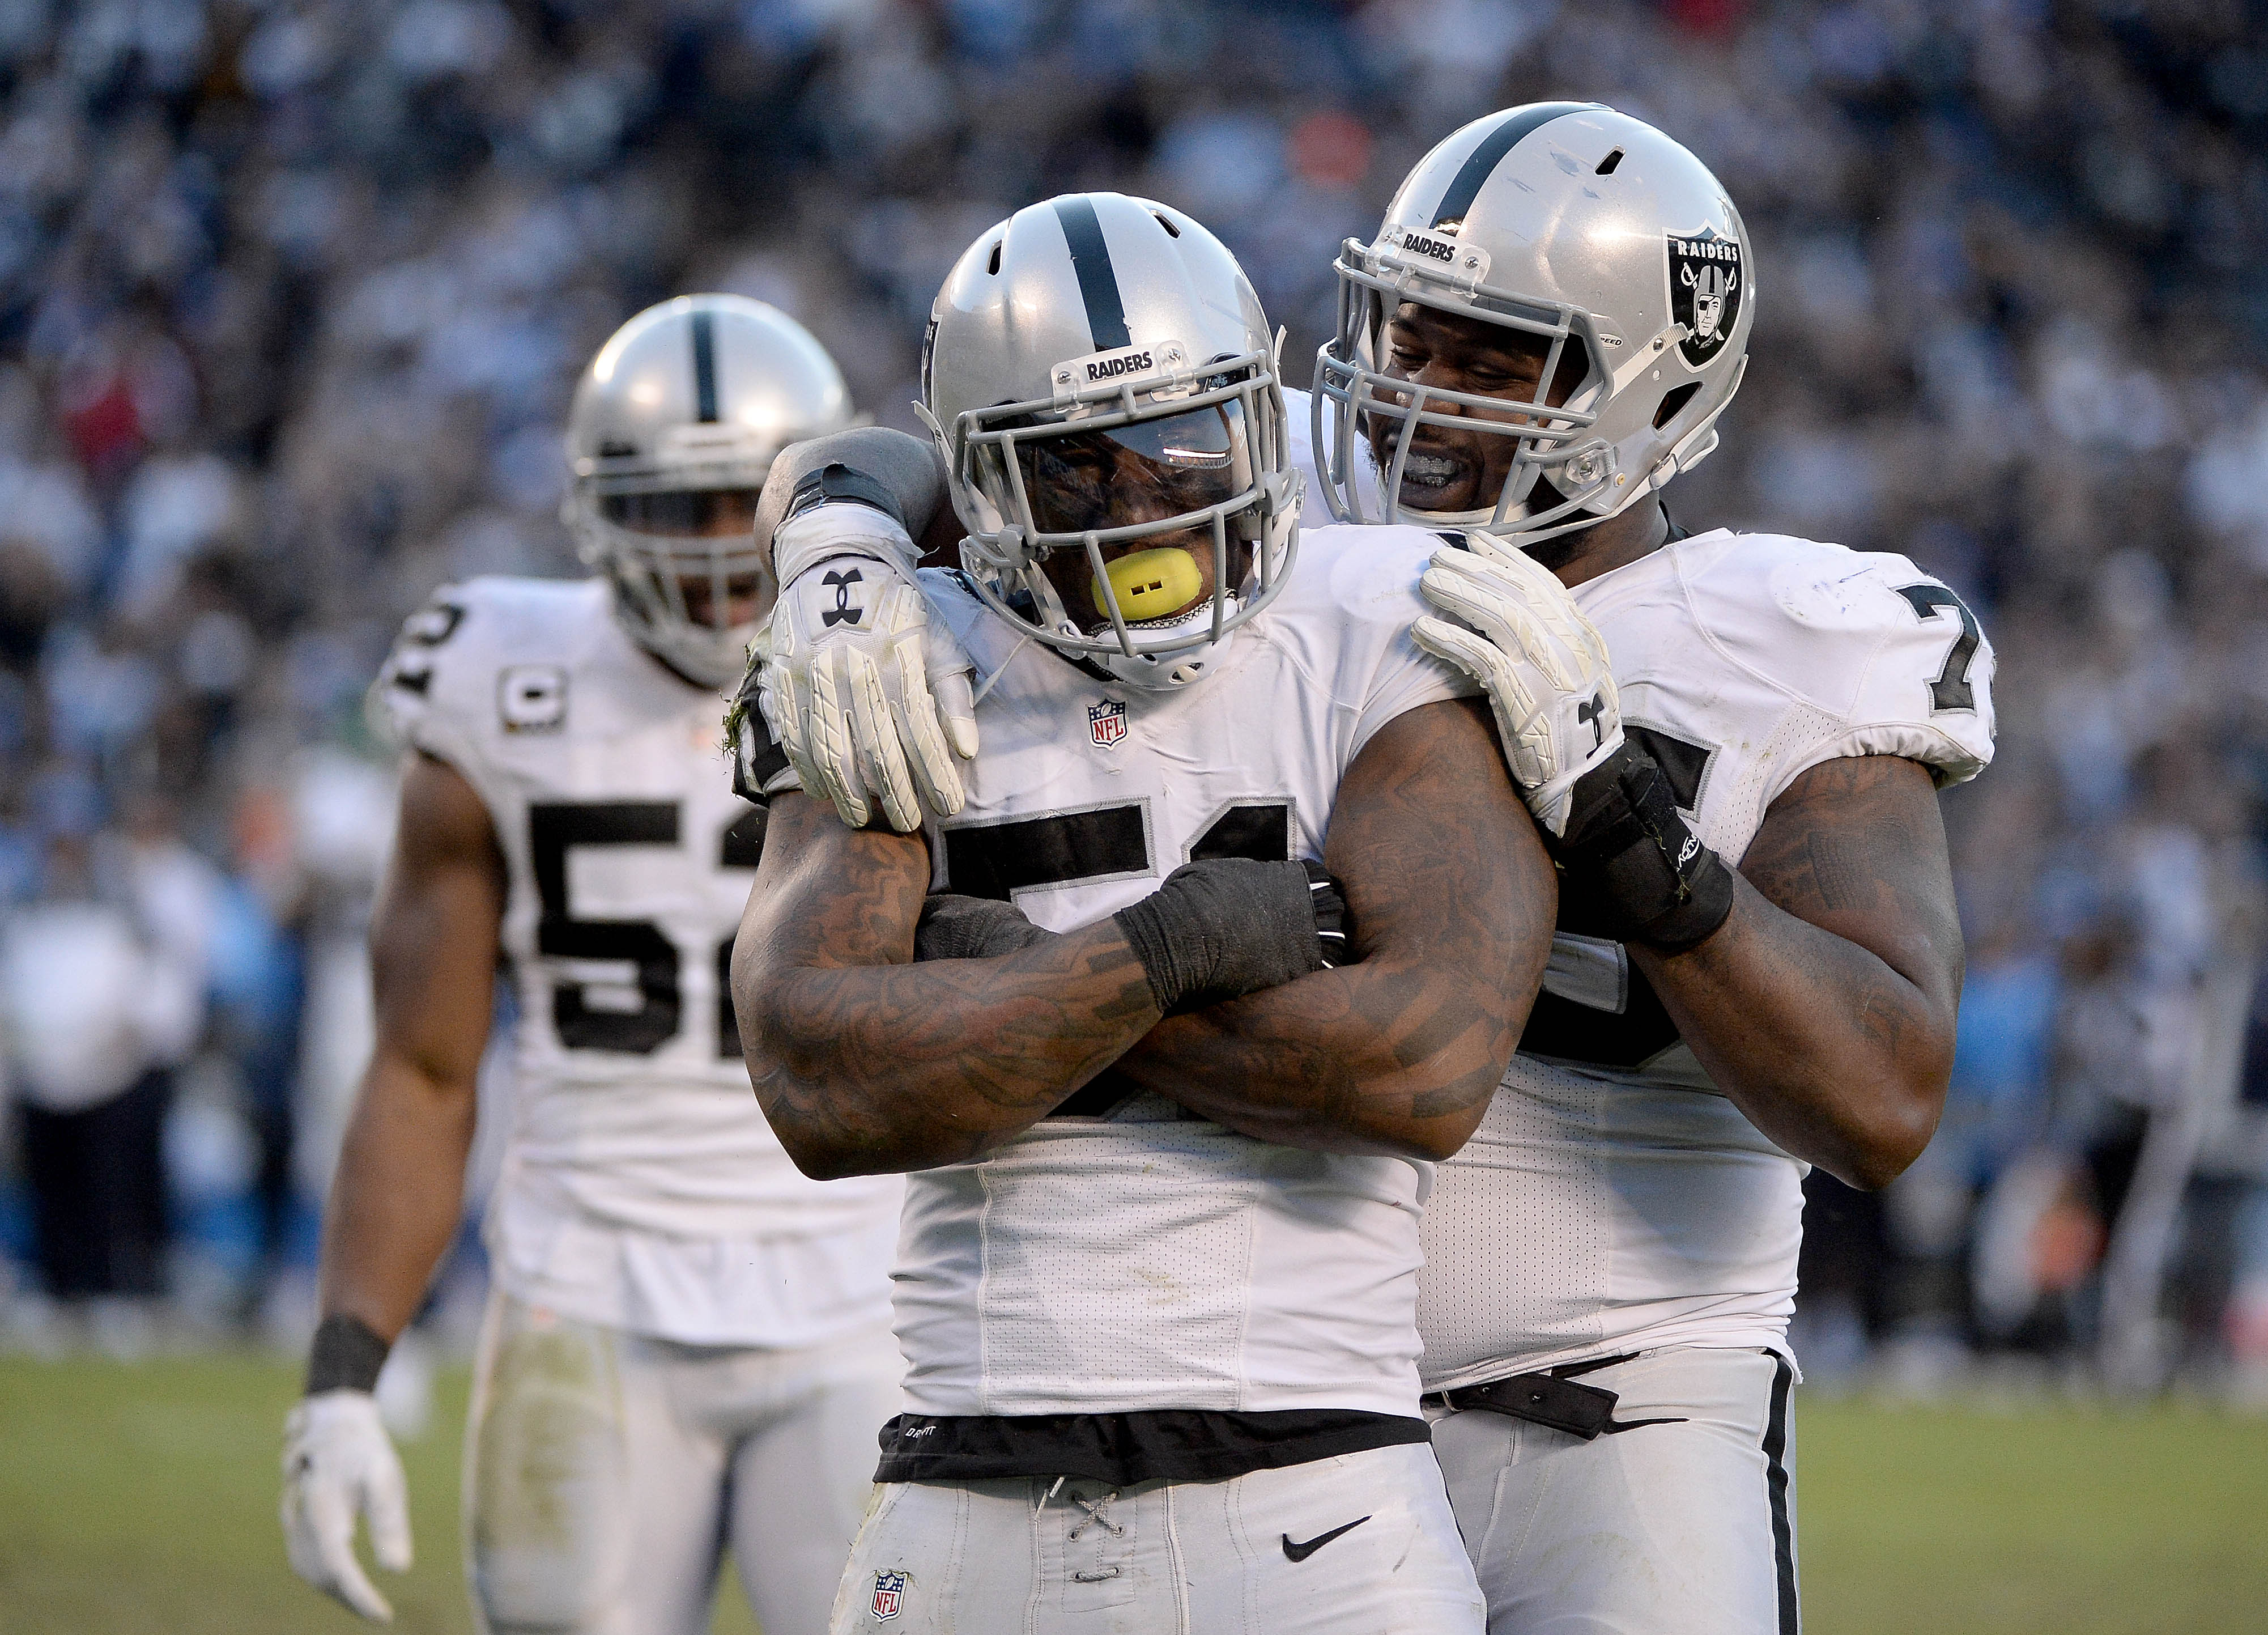 NFL Playoff Picture 2017, AFC Playoff Picture, NFC Playoff Picture, NFL Playoff Seeding,NFL Playoff Updated 2017, NFL Playoff 2017, NFL Playoff teams, NFL Playoff wild card, NFL Playoff projected